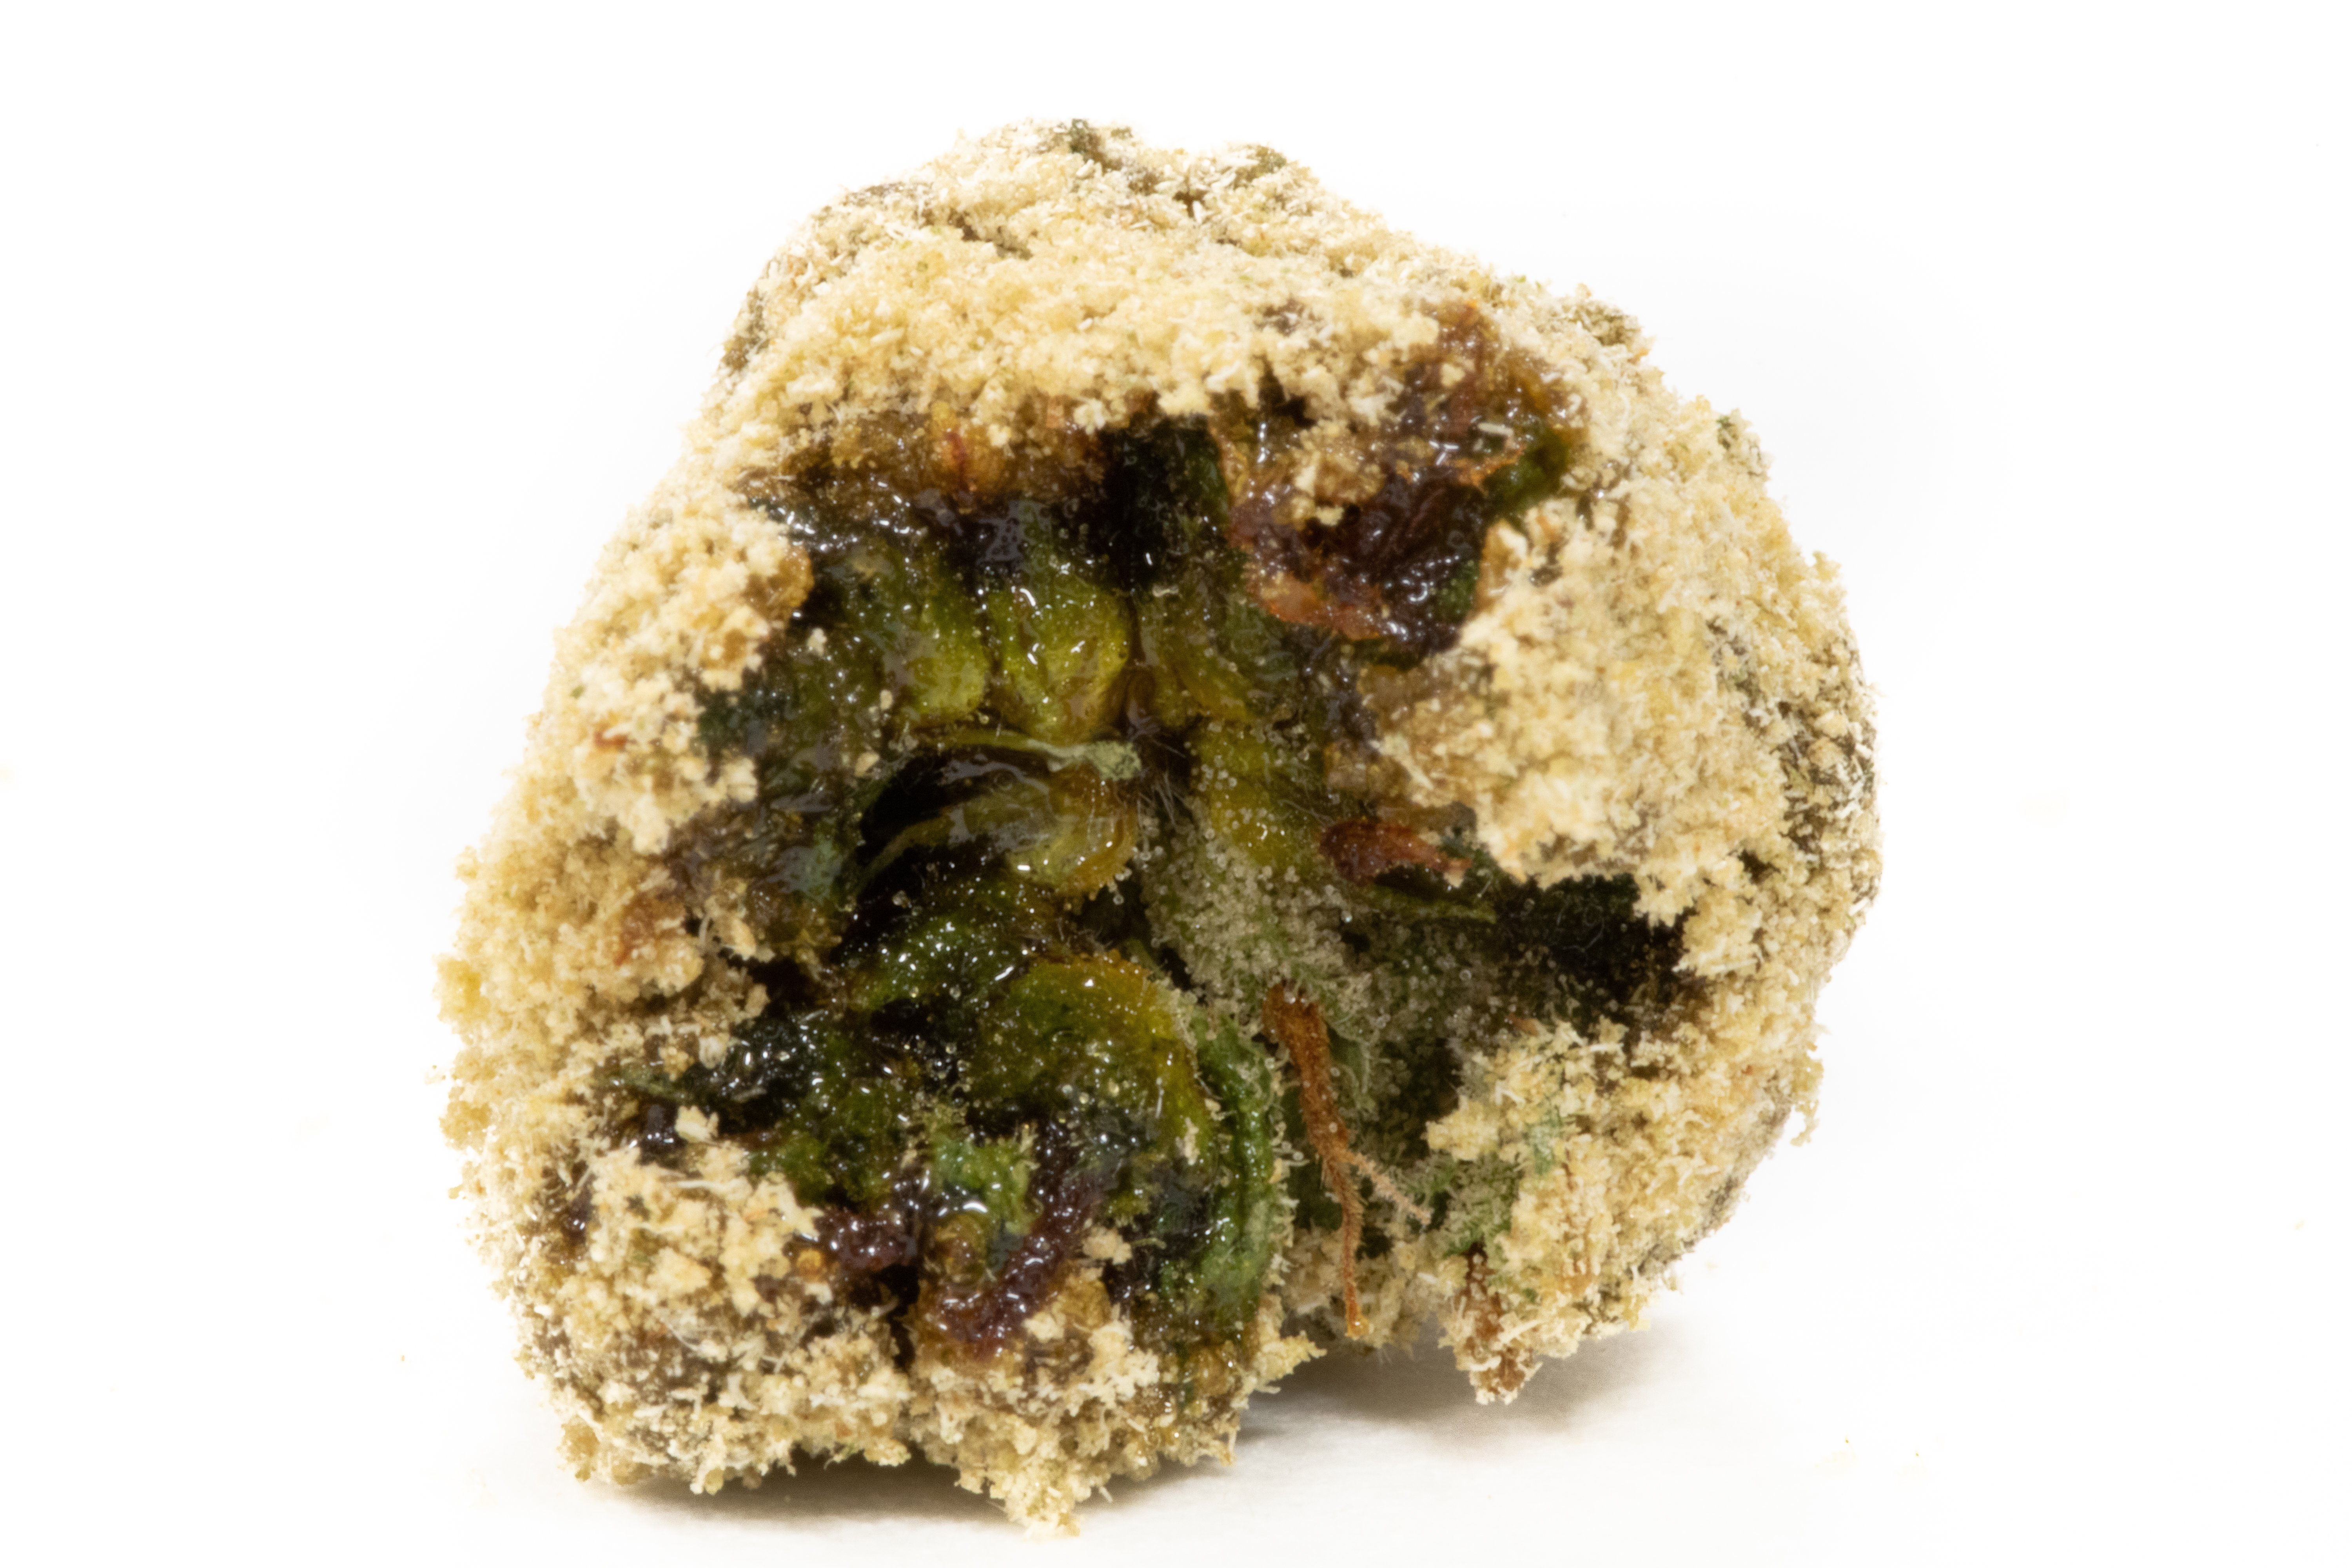 moonrocks cross section nug